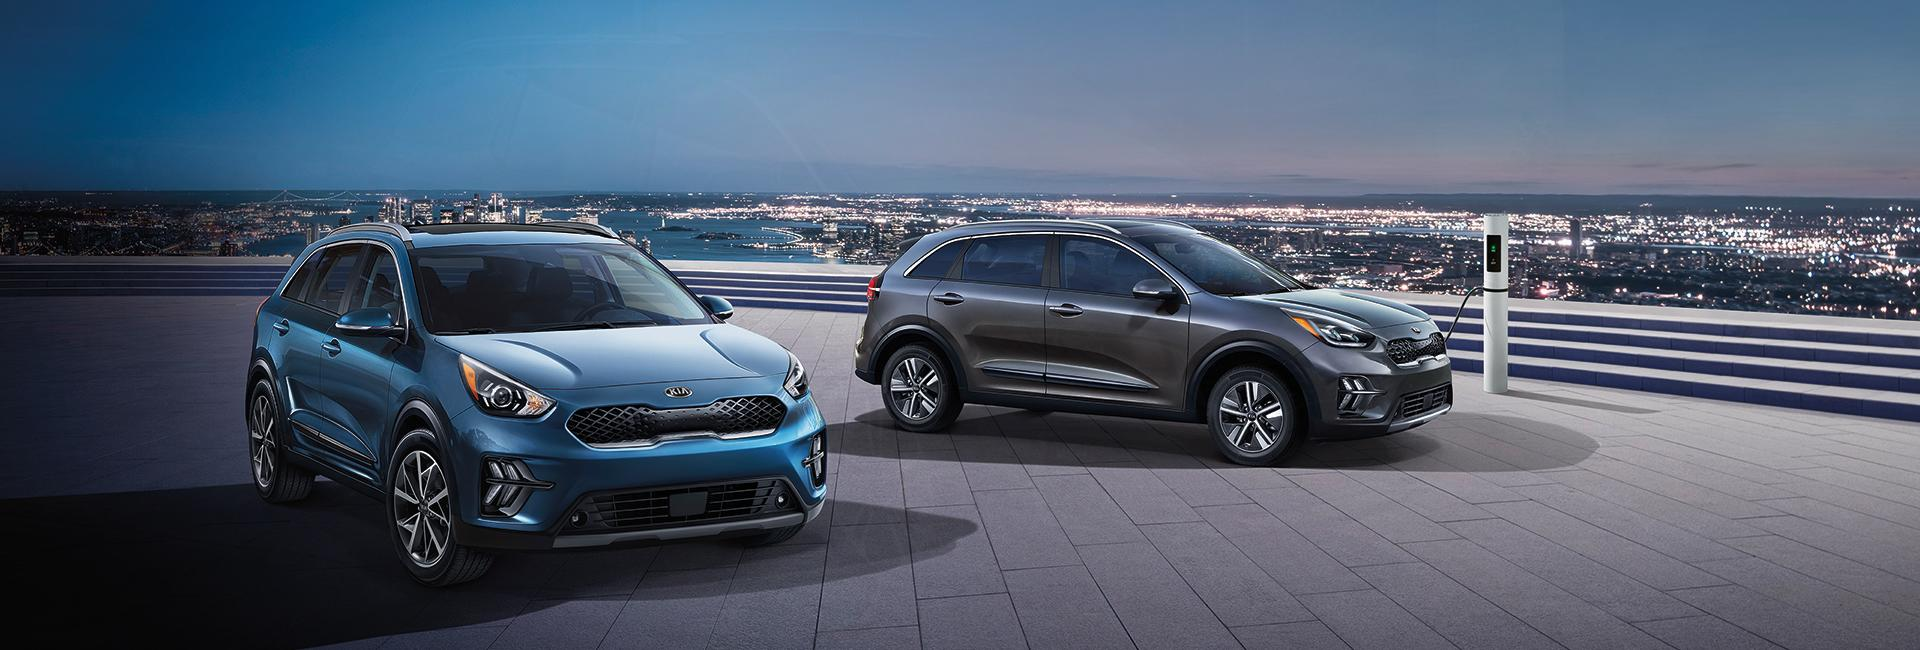 Picture of the new 2020 Kia Niro for sale at Spitzer Kia Mansfield.